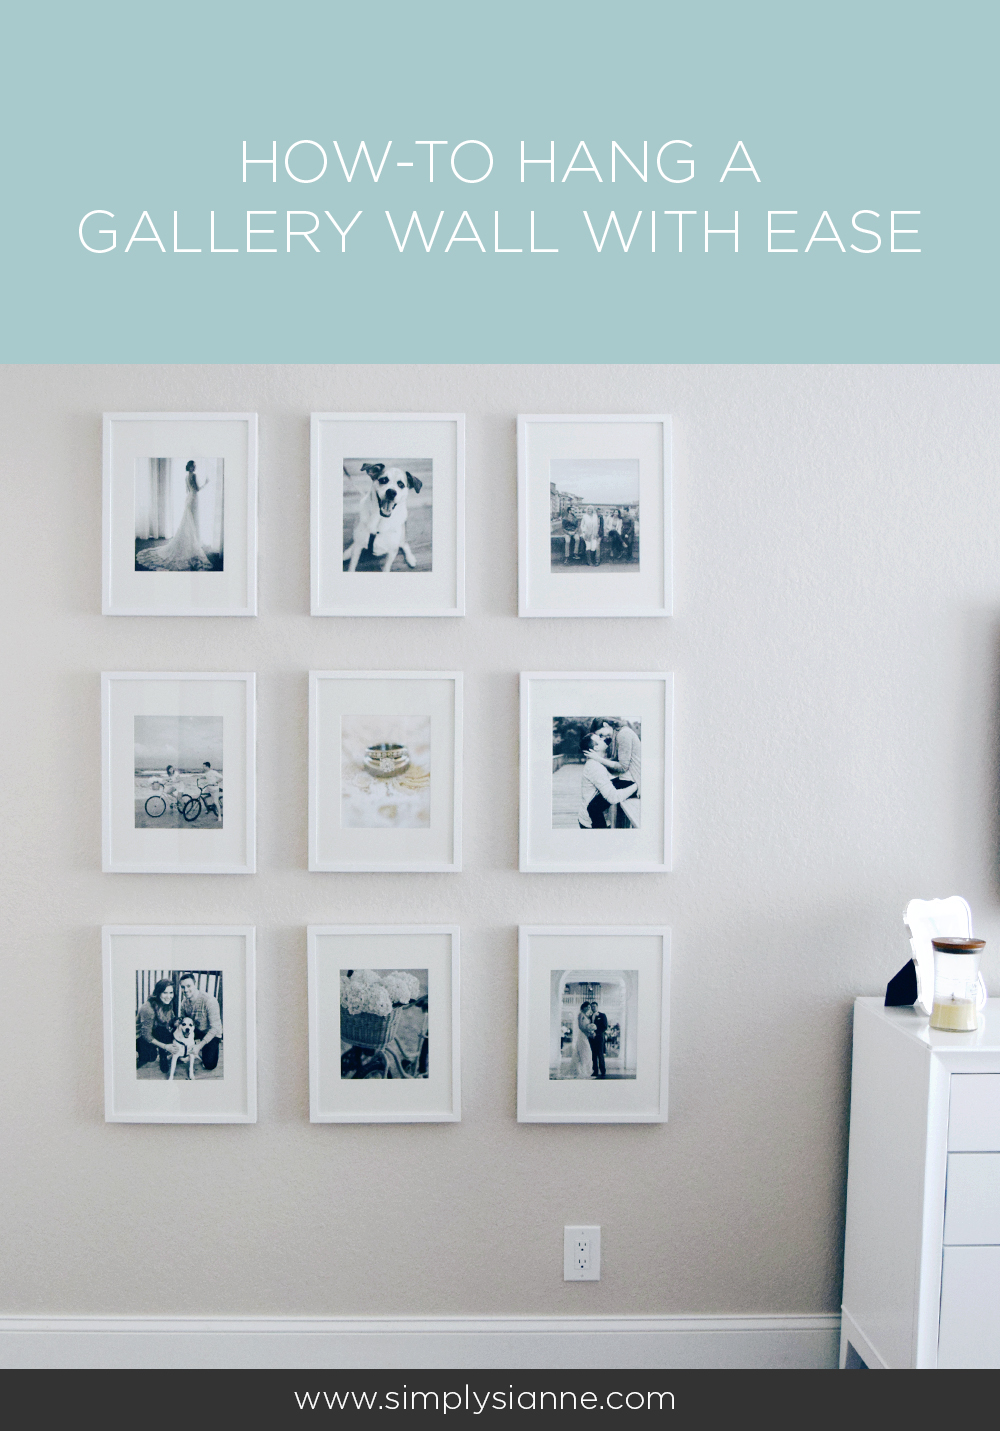 Hang a gallery wall with ease using Command Strips!